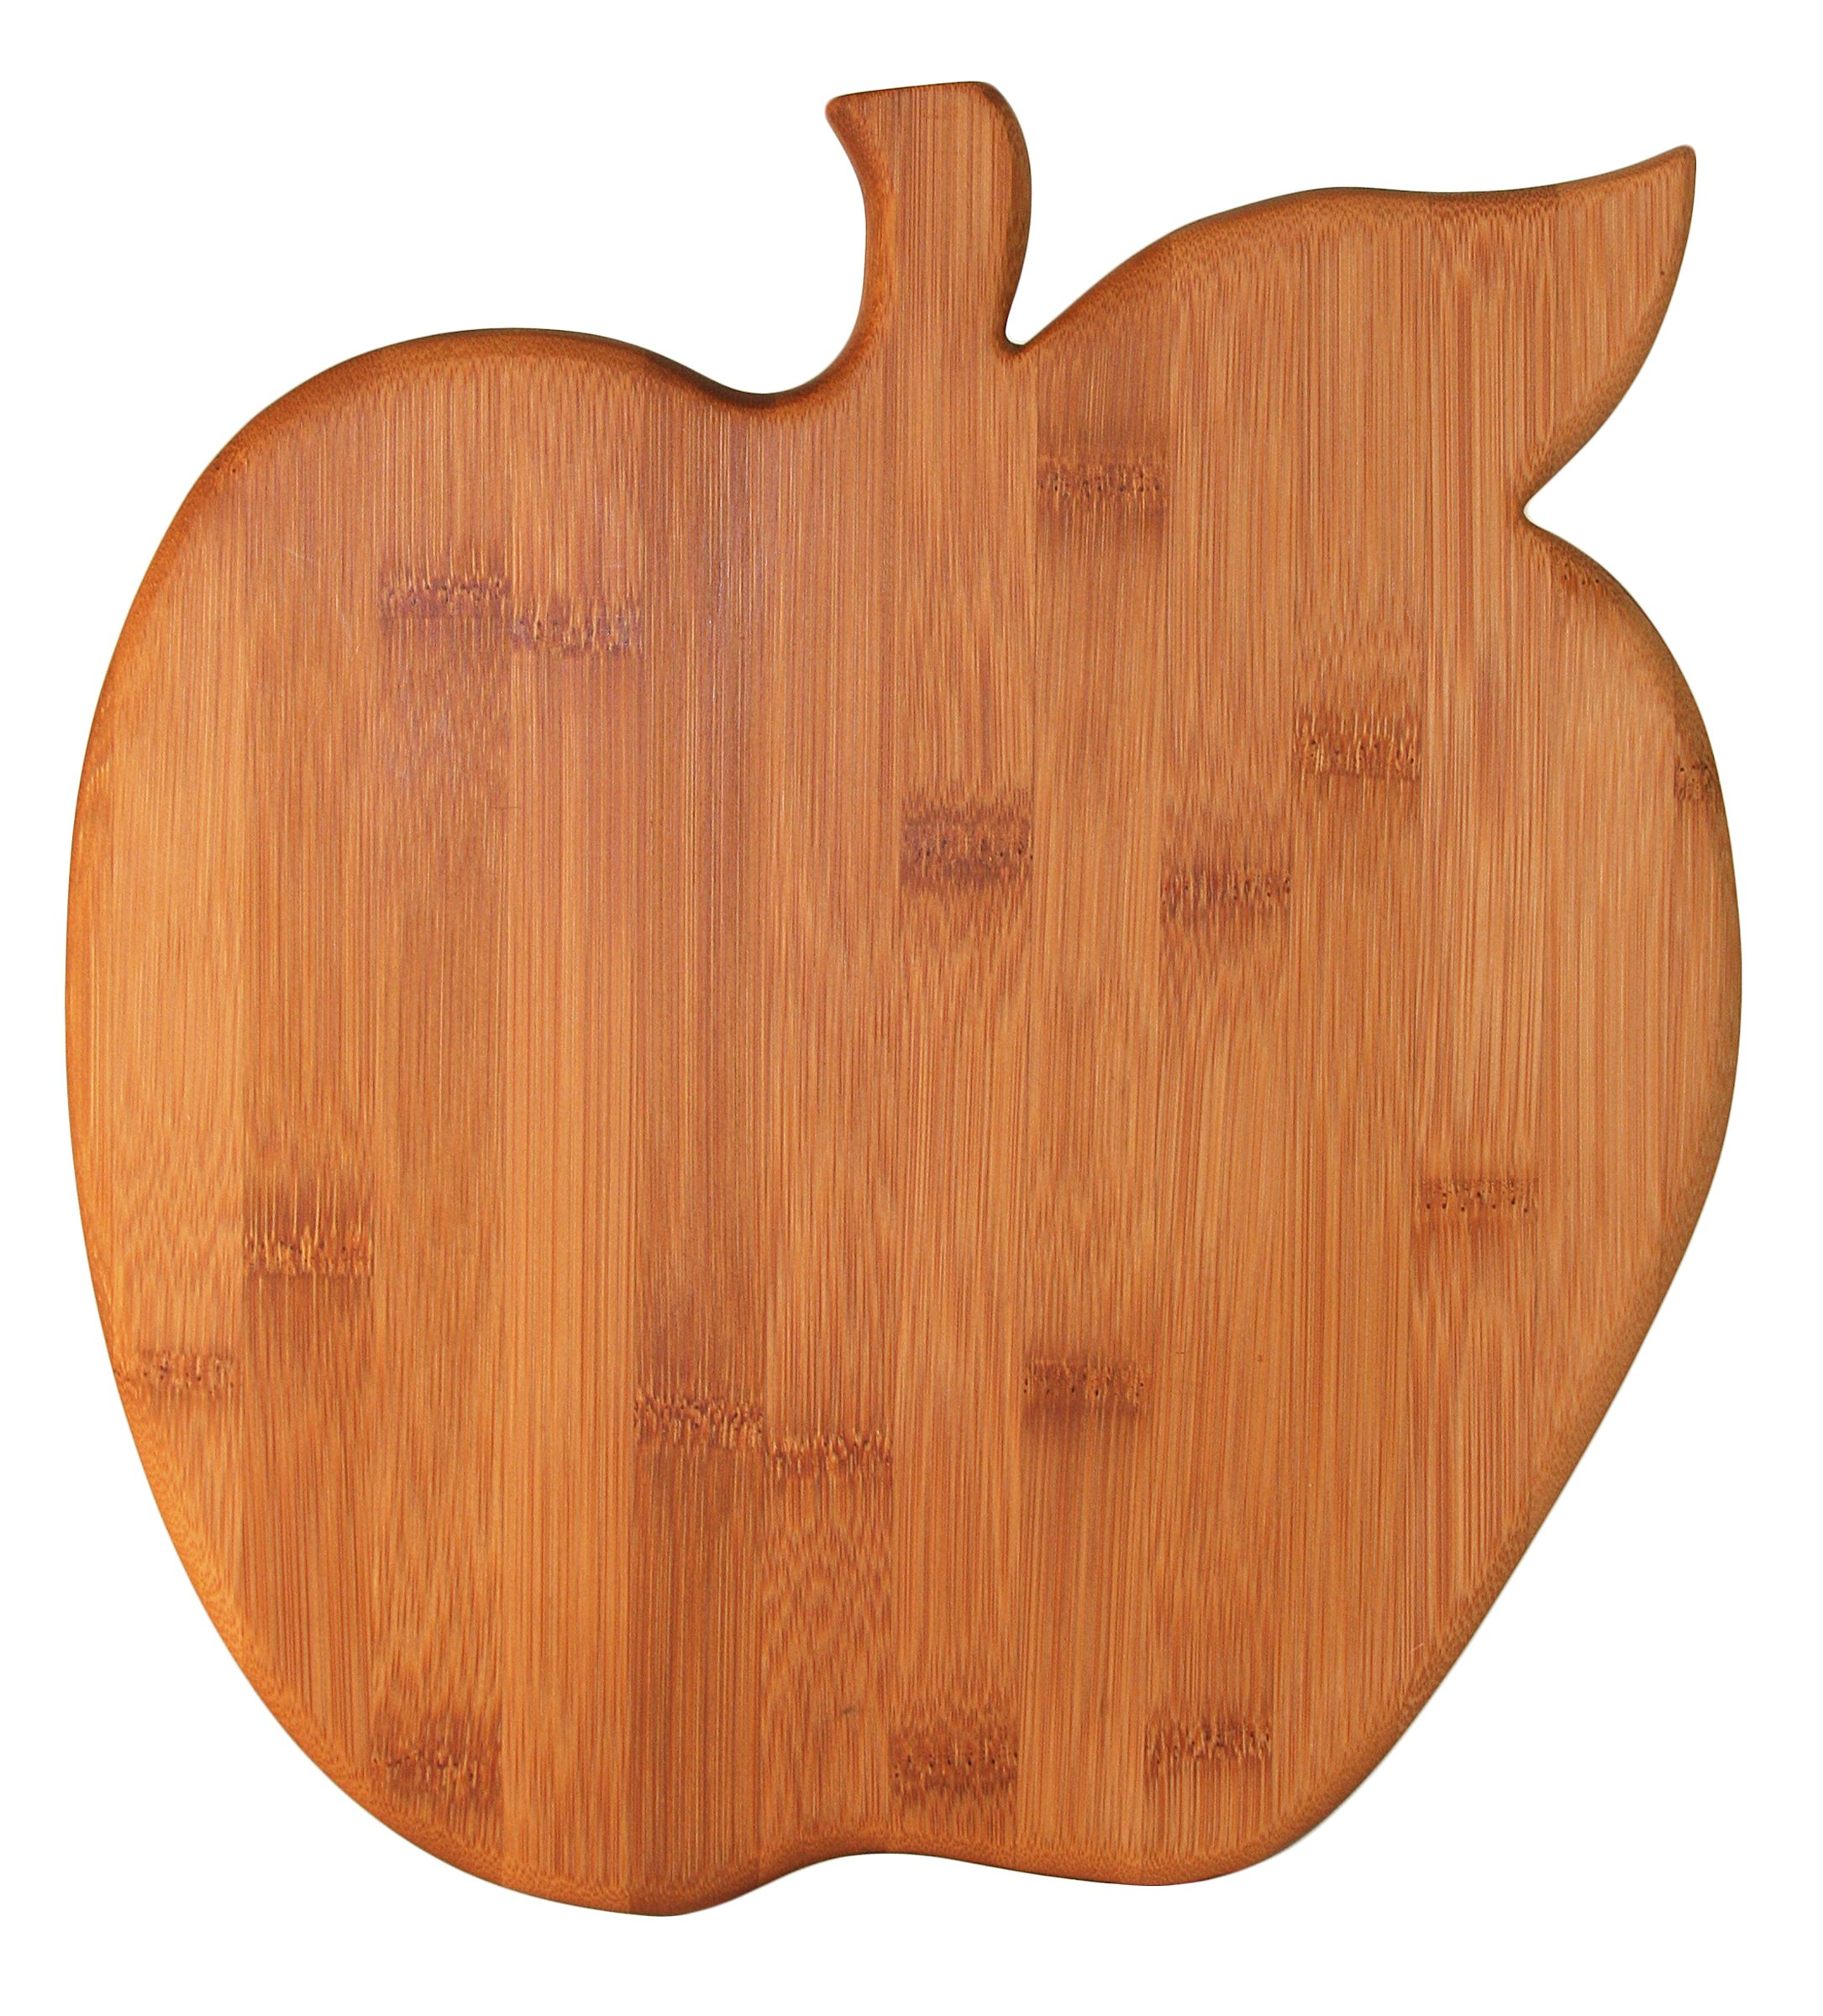 Totally Bamboo Big Apple Shaped Bamboo Cutting & Serving Board, 12'' by 12''